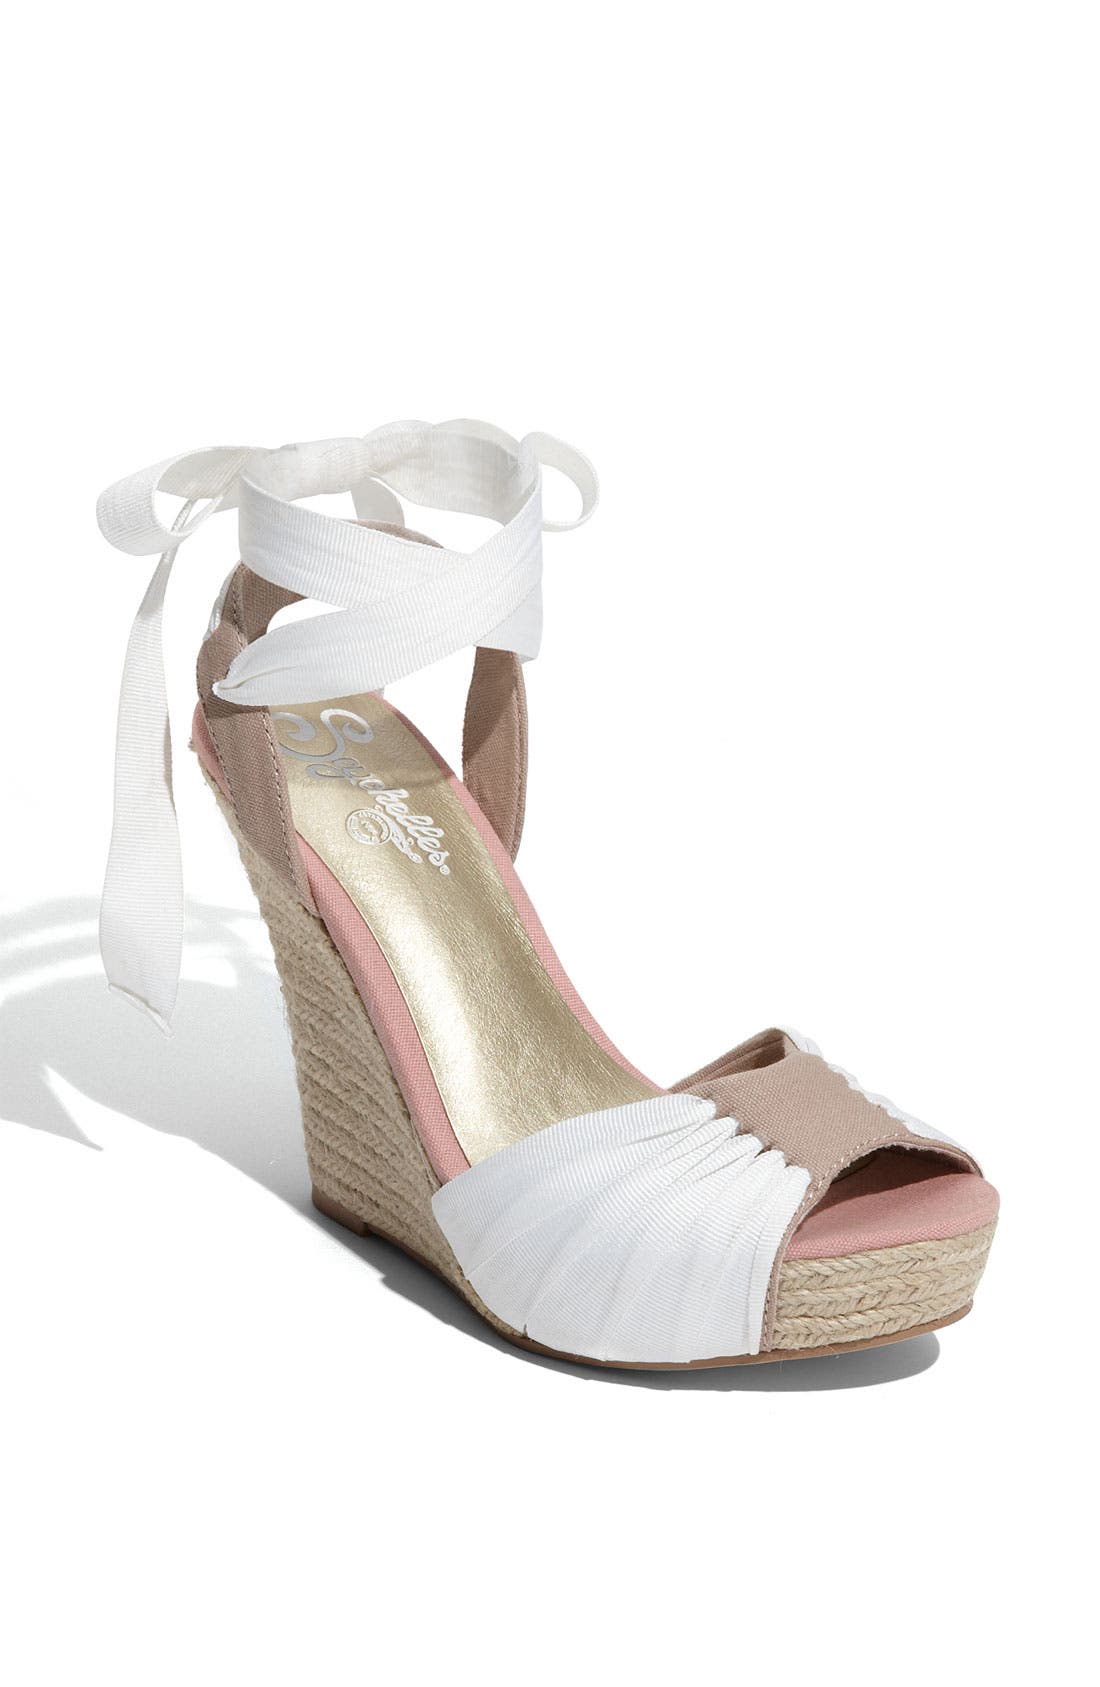 Alternate Image 1 Selected - Seychelles 'Arden' Sandal